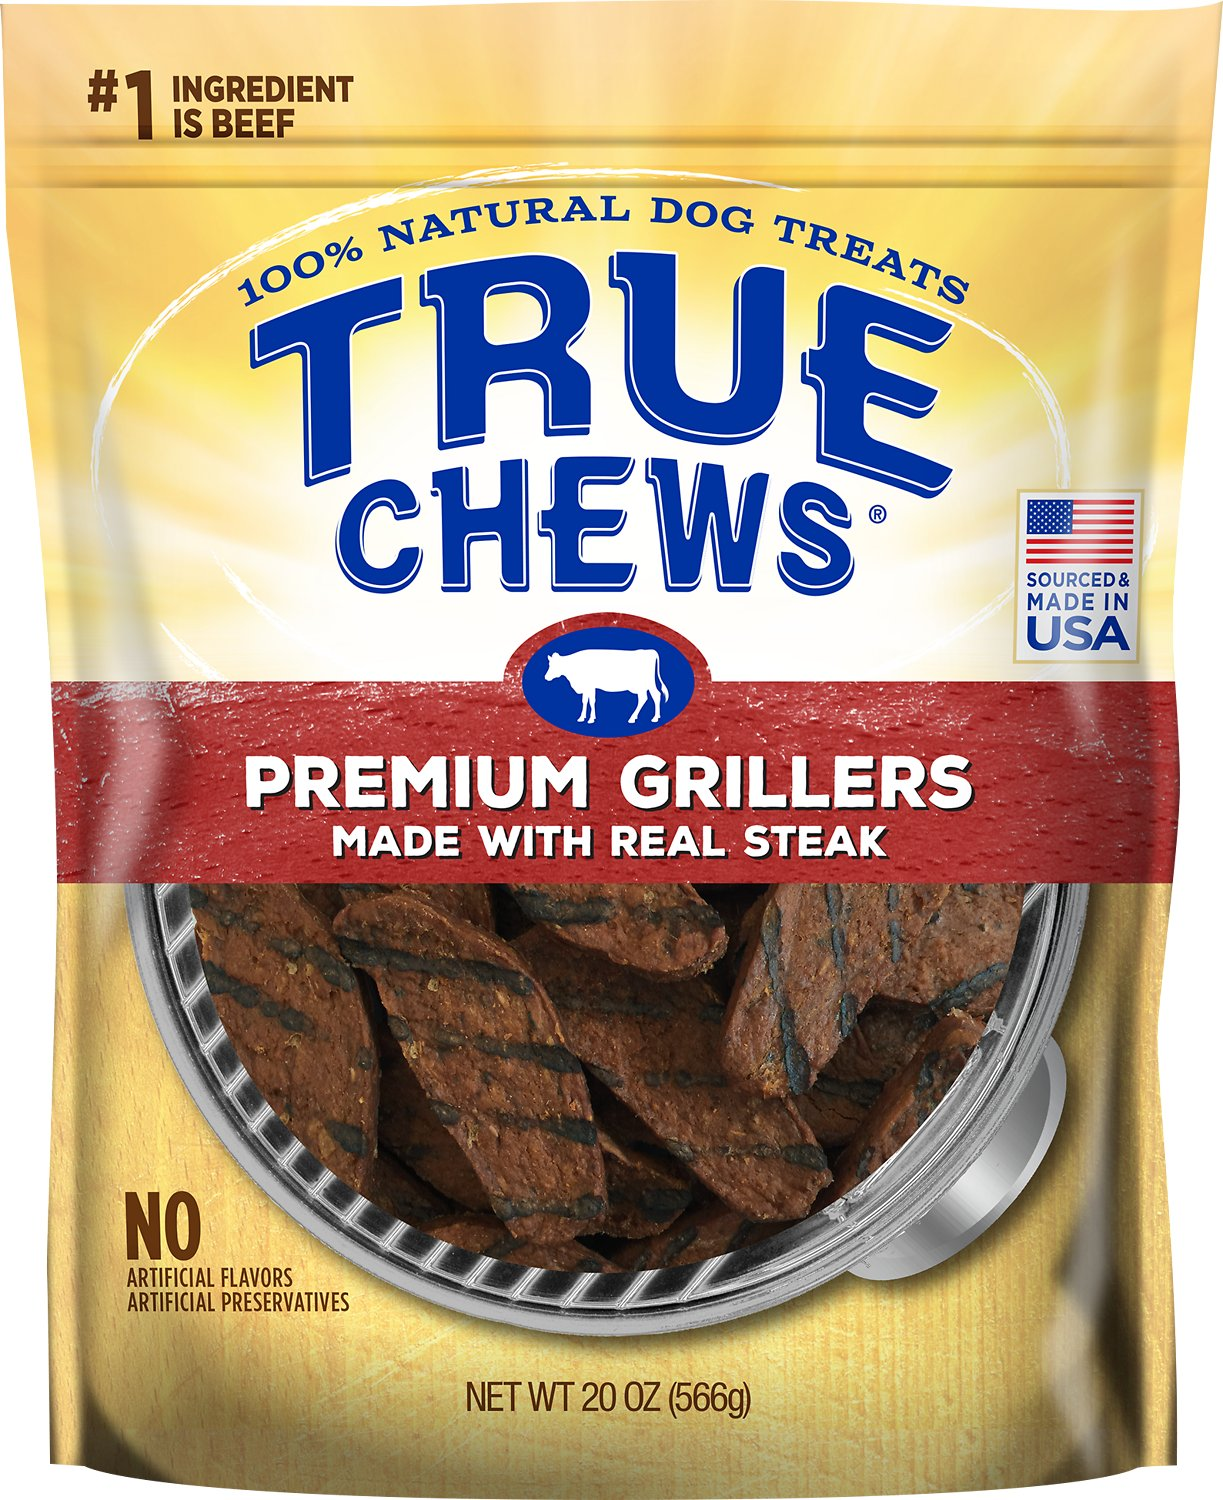 True Chews Premium Grillers with Real Steak Dog Treats Image